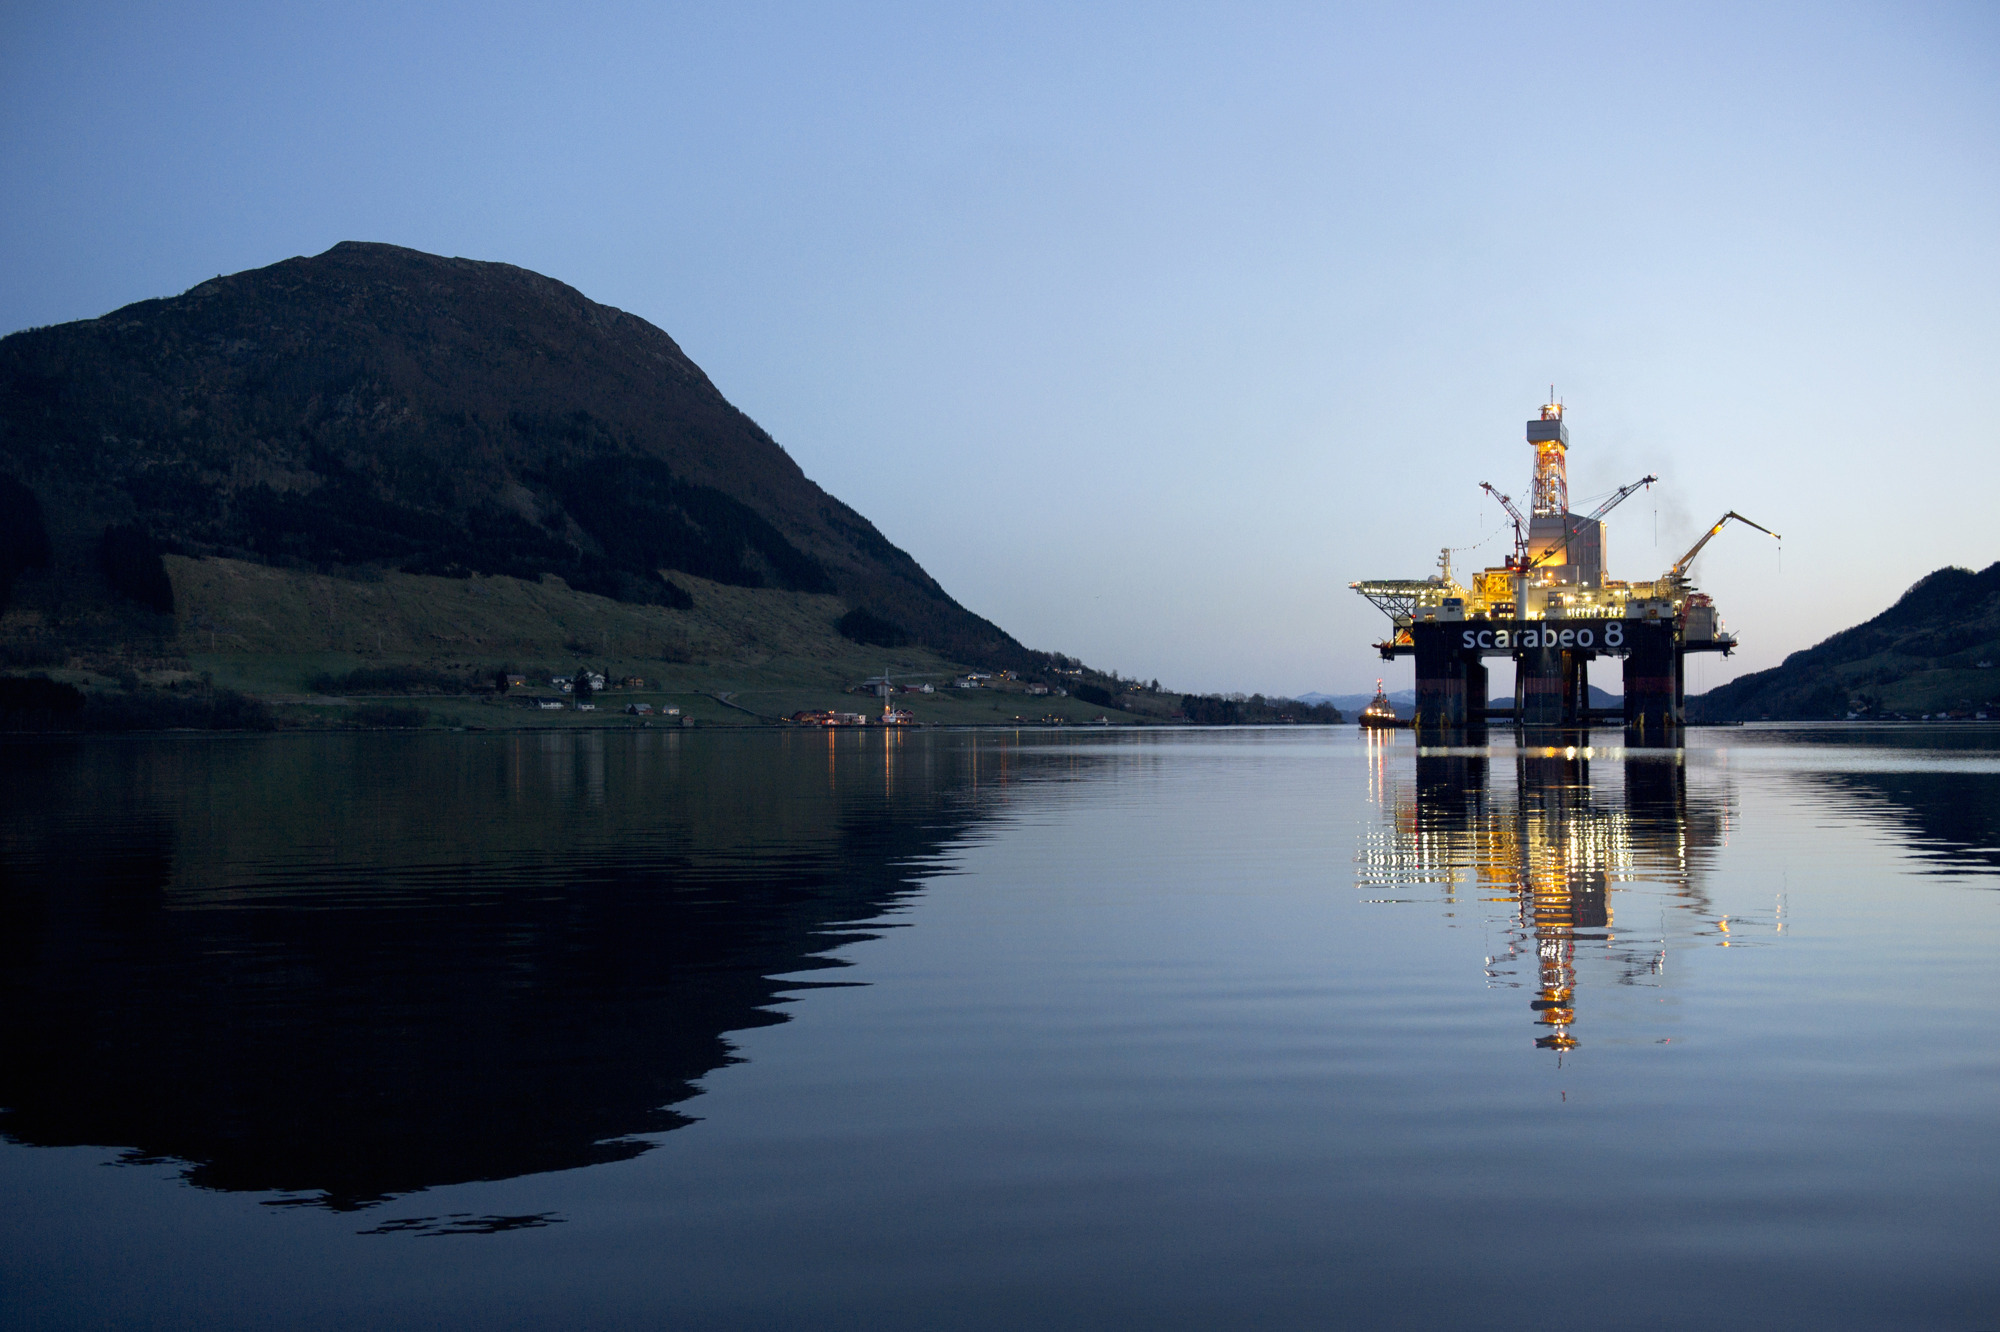 The Scarabeo 8 deepwater oil drilling rig, operated by ENI Norge AS, stands illuminated at night after being re-fitted at the Westcon AS yard in Olensvag, Norway. Photographer: Kristian Helgesen/Bloomberg